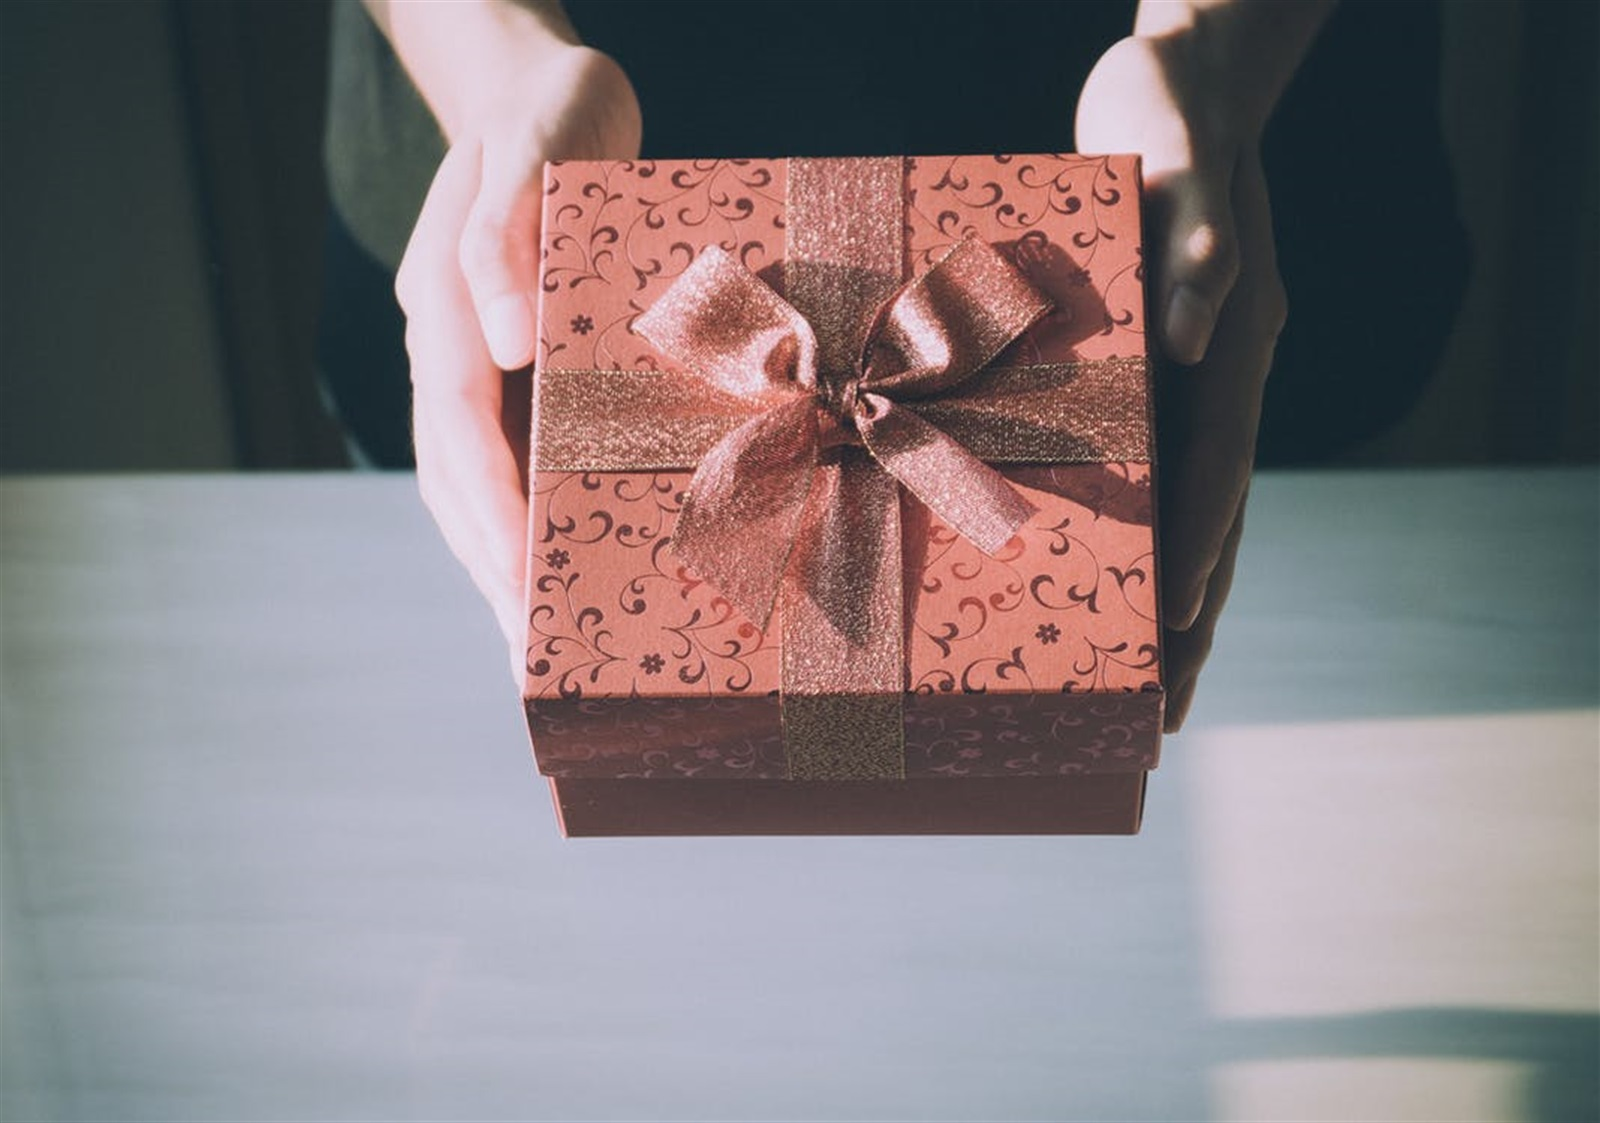 Alternative Seasonal Gift Ideas for Small Businesses